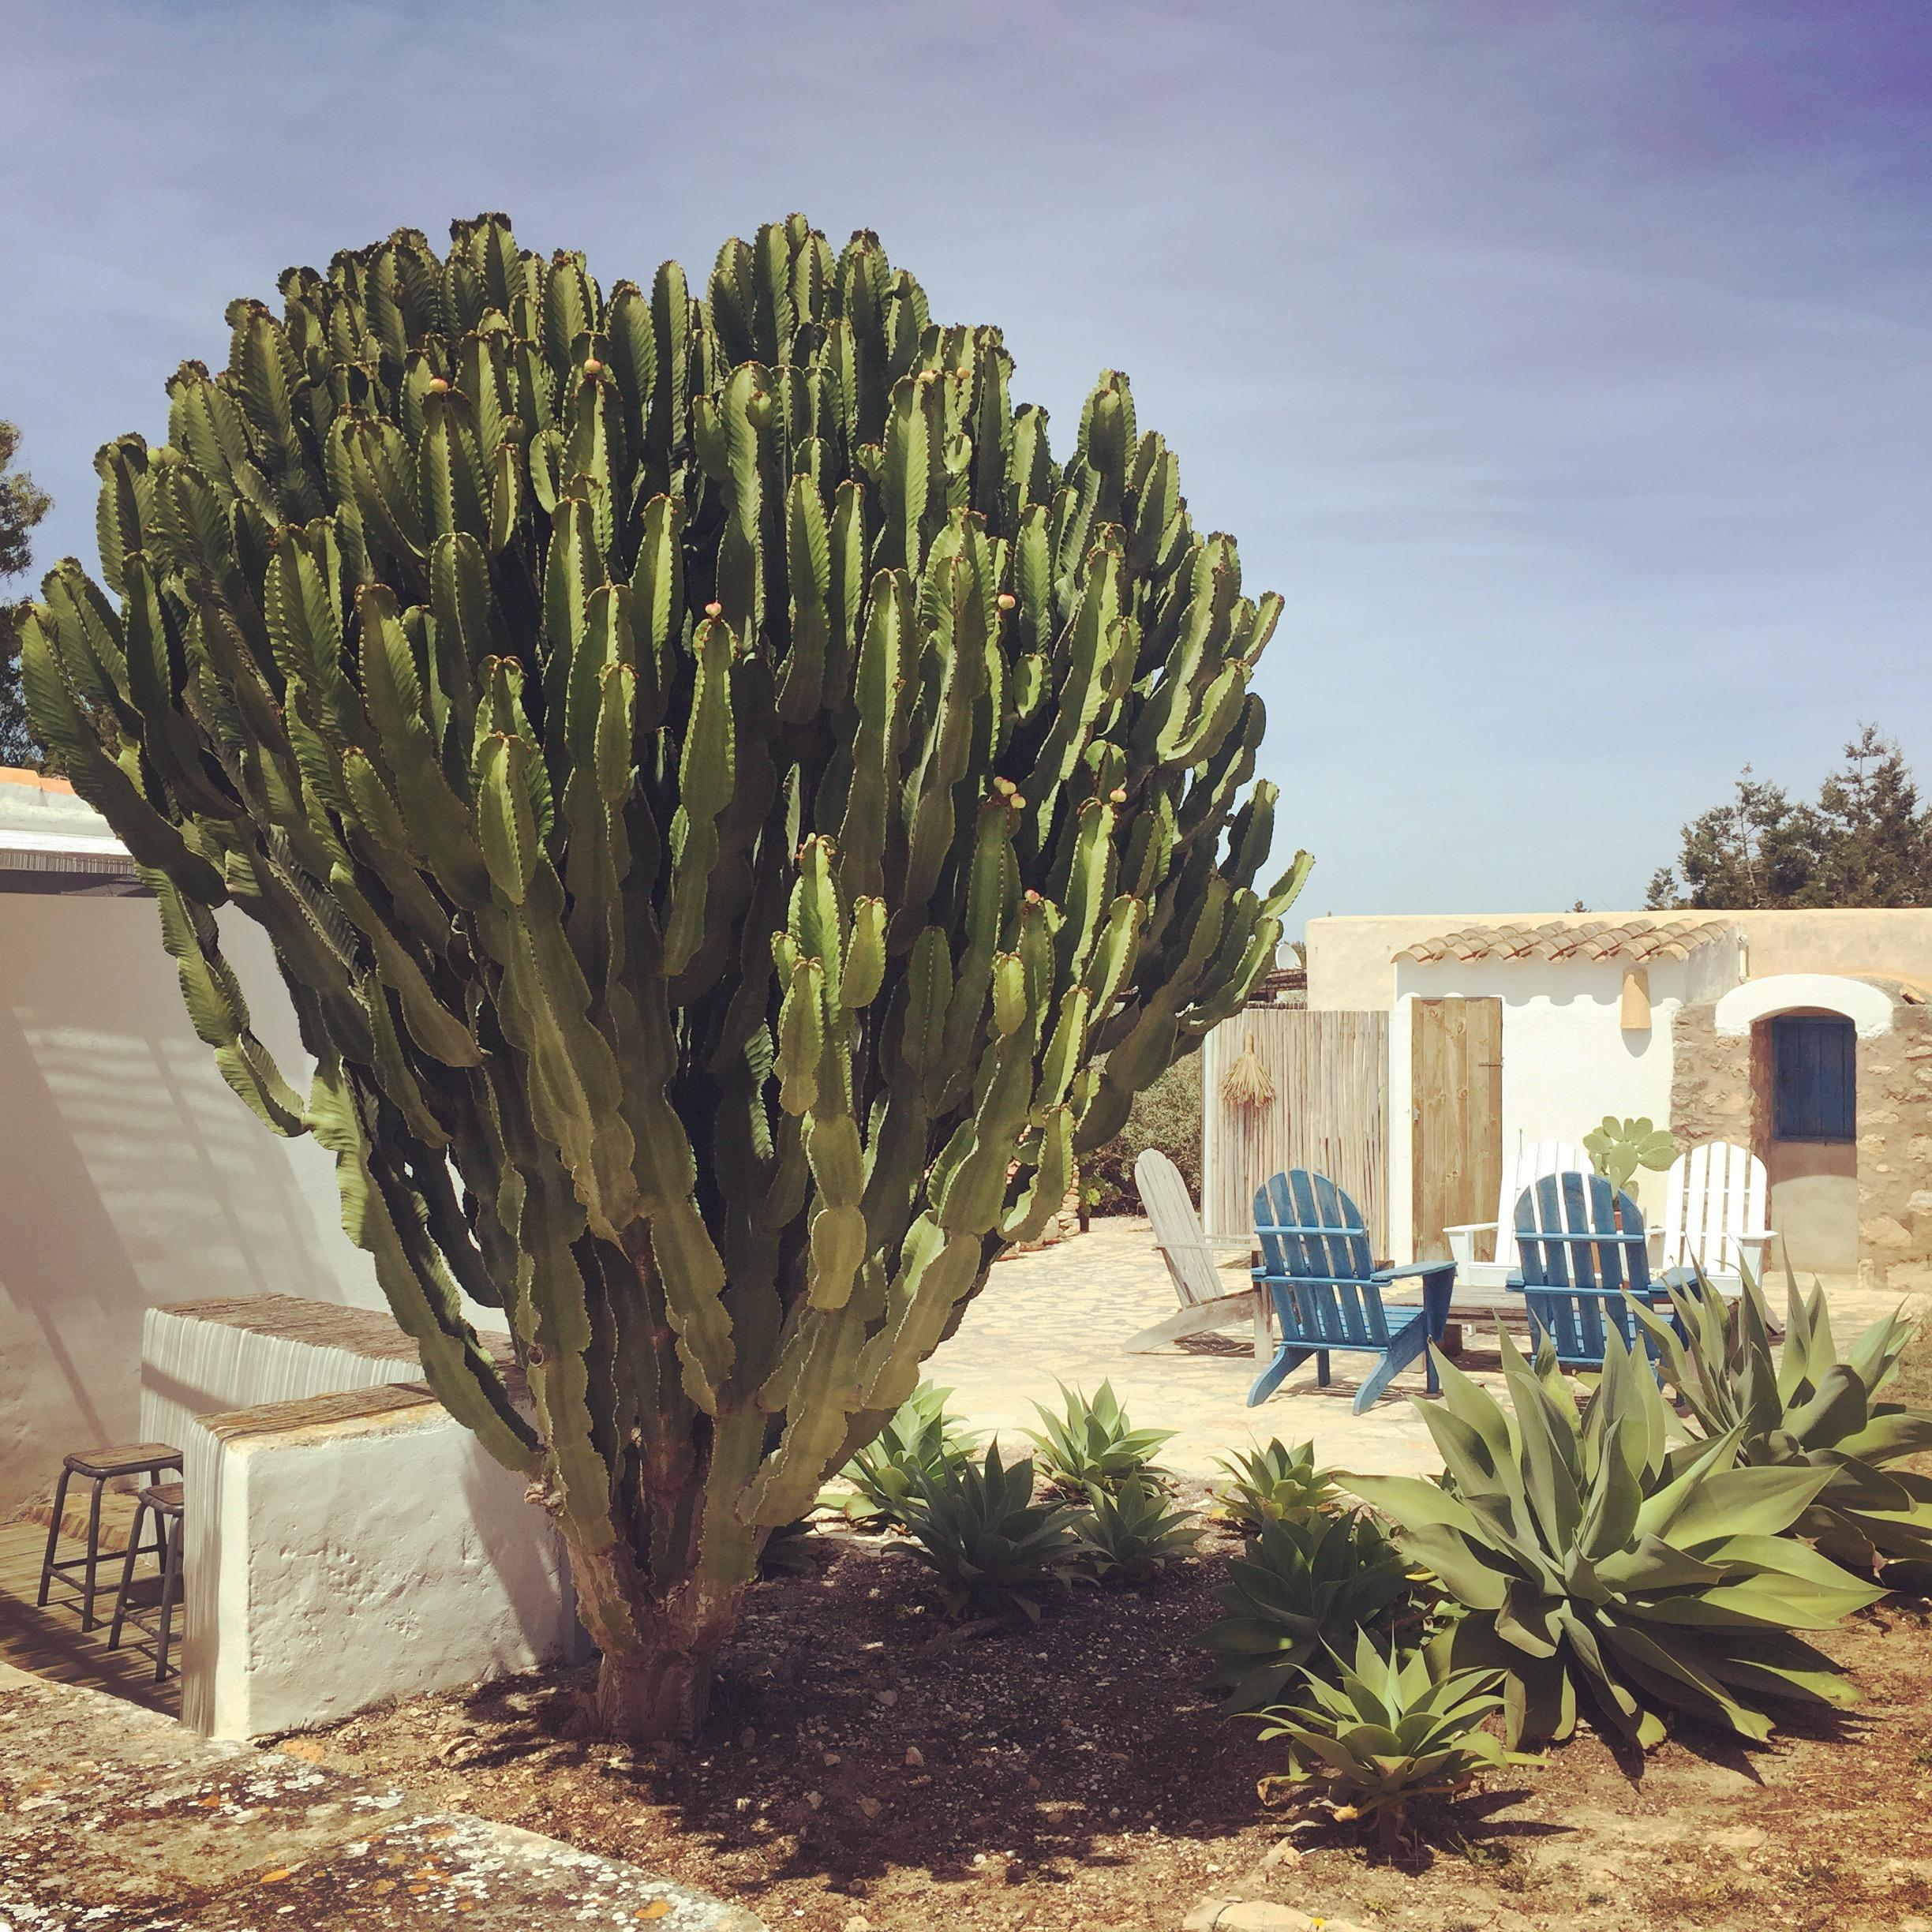 #couchstyle #formentera #holiday #summerhouse #cactus